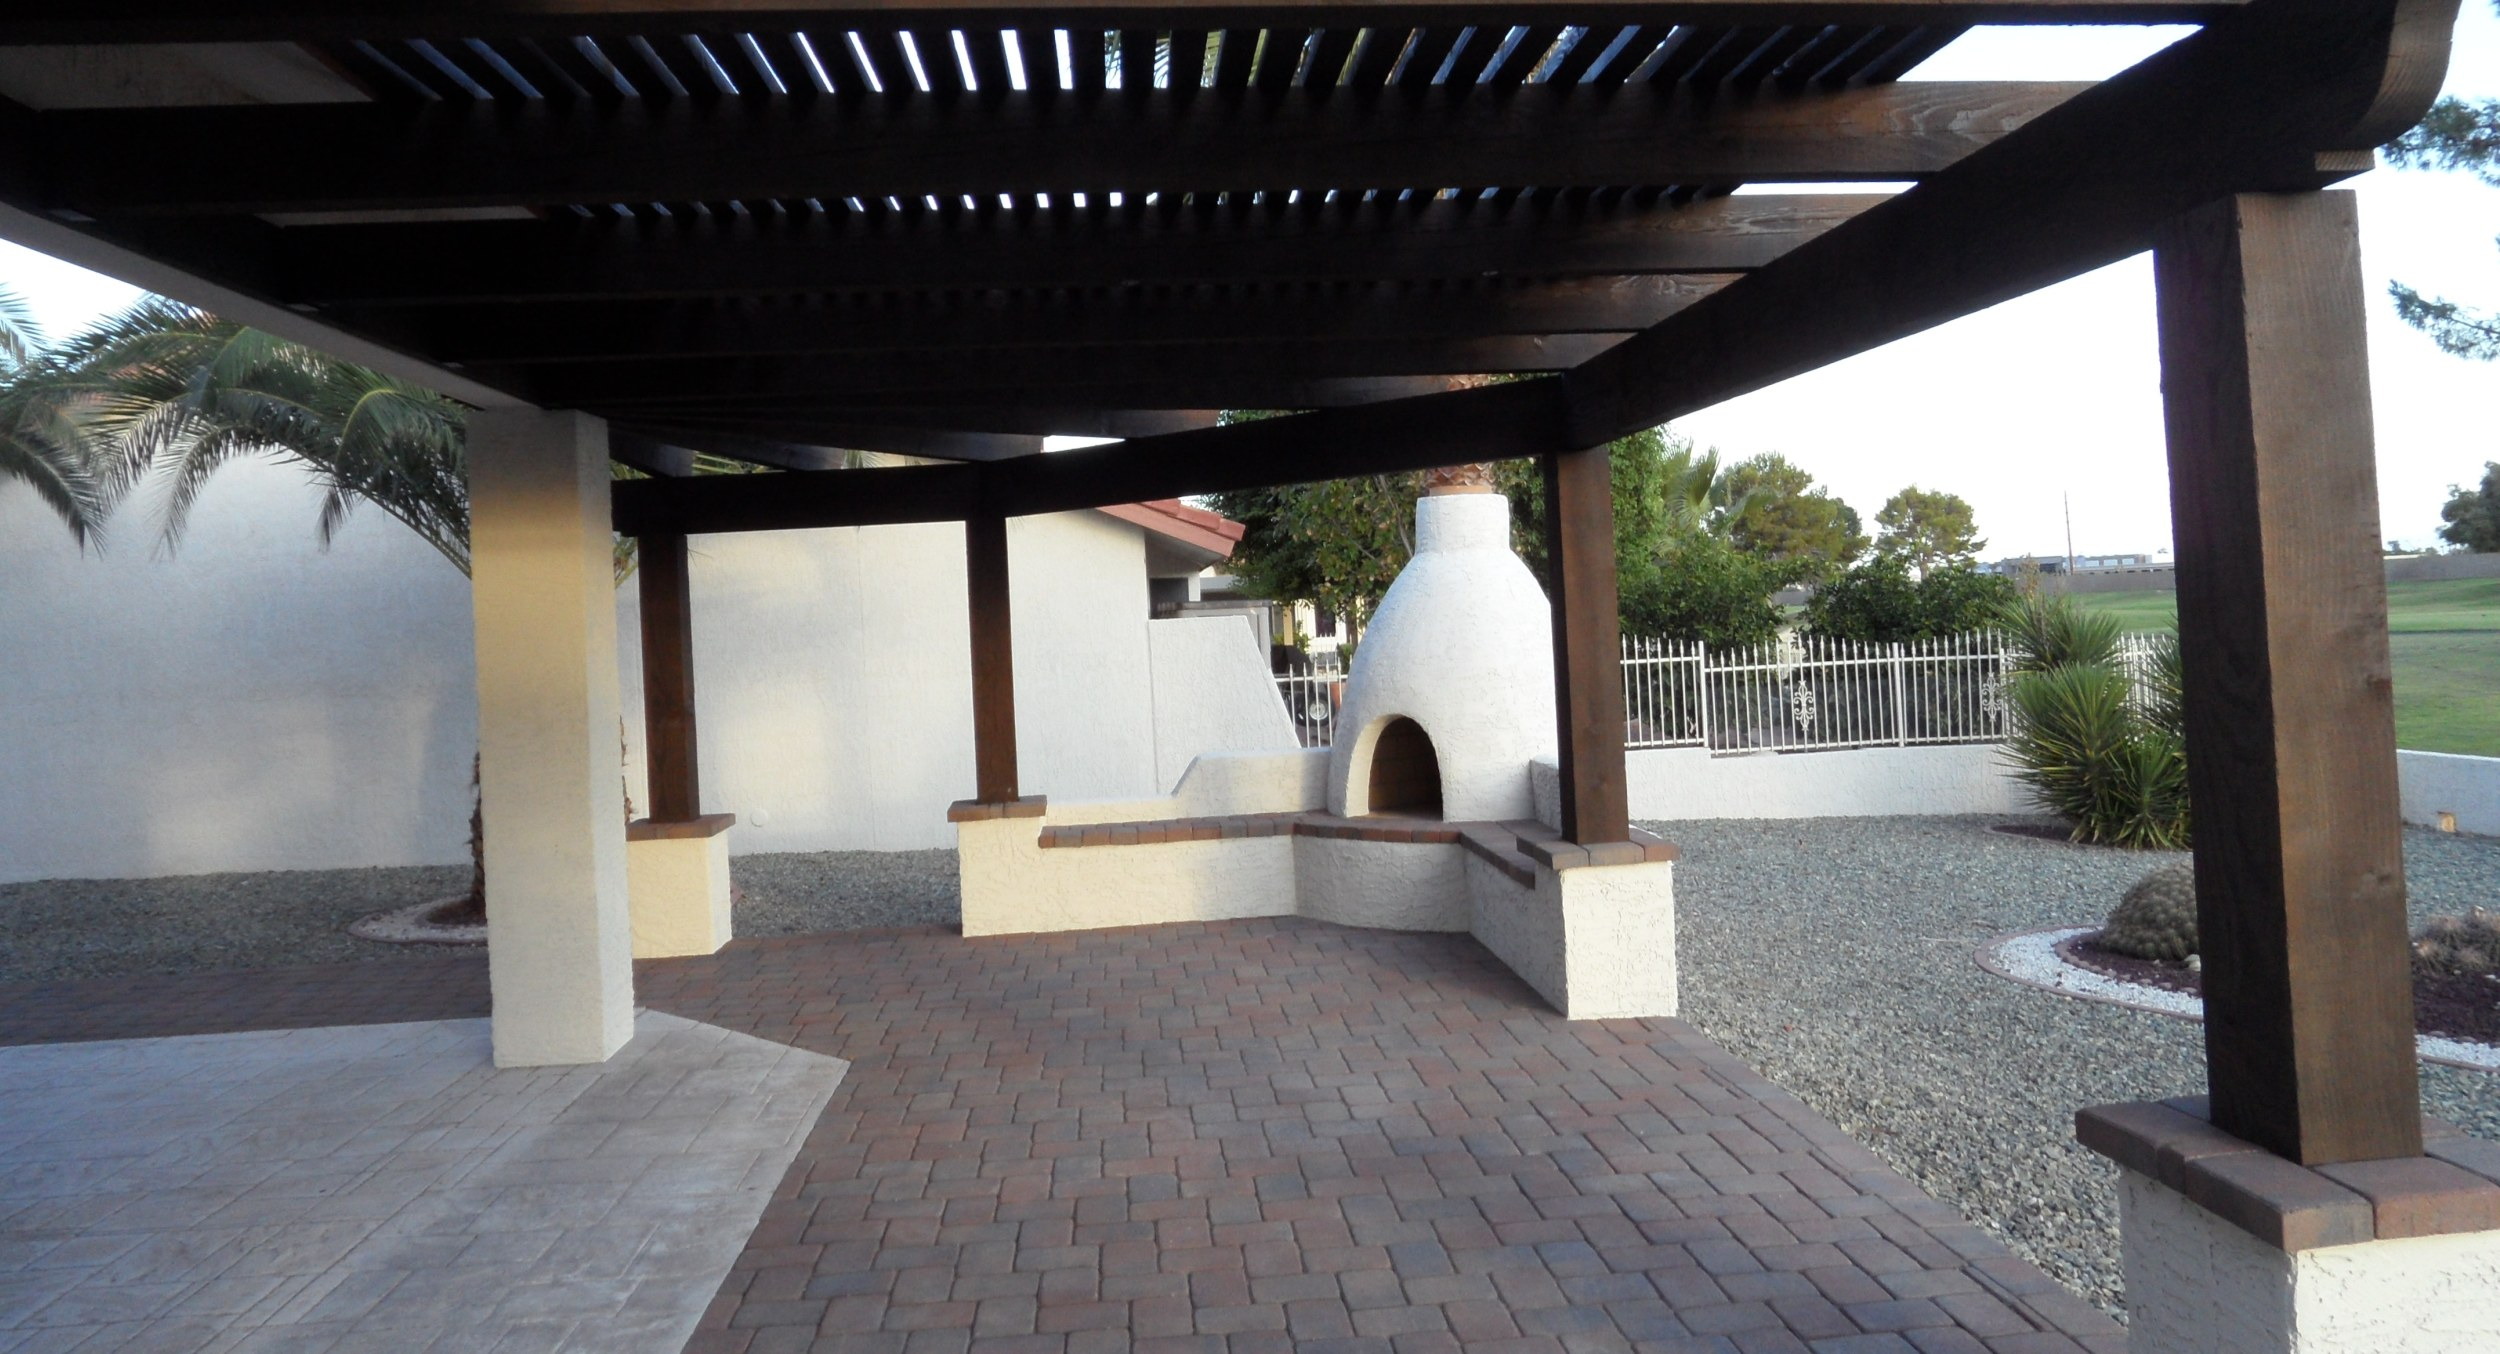 These Glendale, AZ landscaping clients wanted outdoor living space improvements. They now have extended the patio with dark pavers. Additionally, all the new entertaining space is under a big shade ramada, and they've got a new beehive outdoor fireplace too.